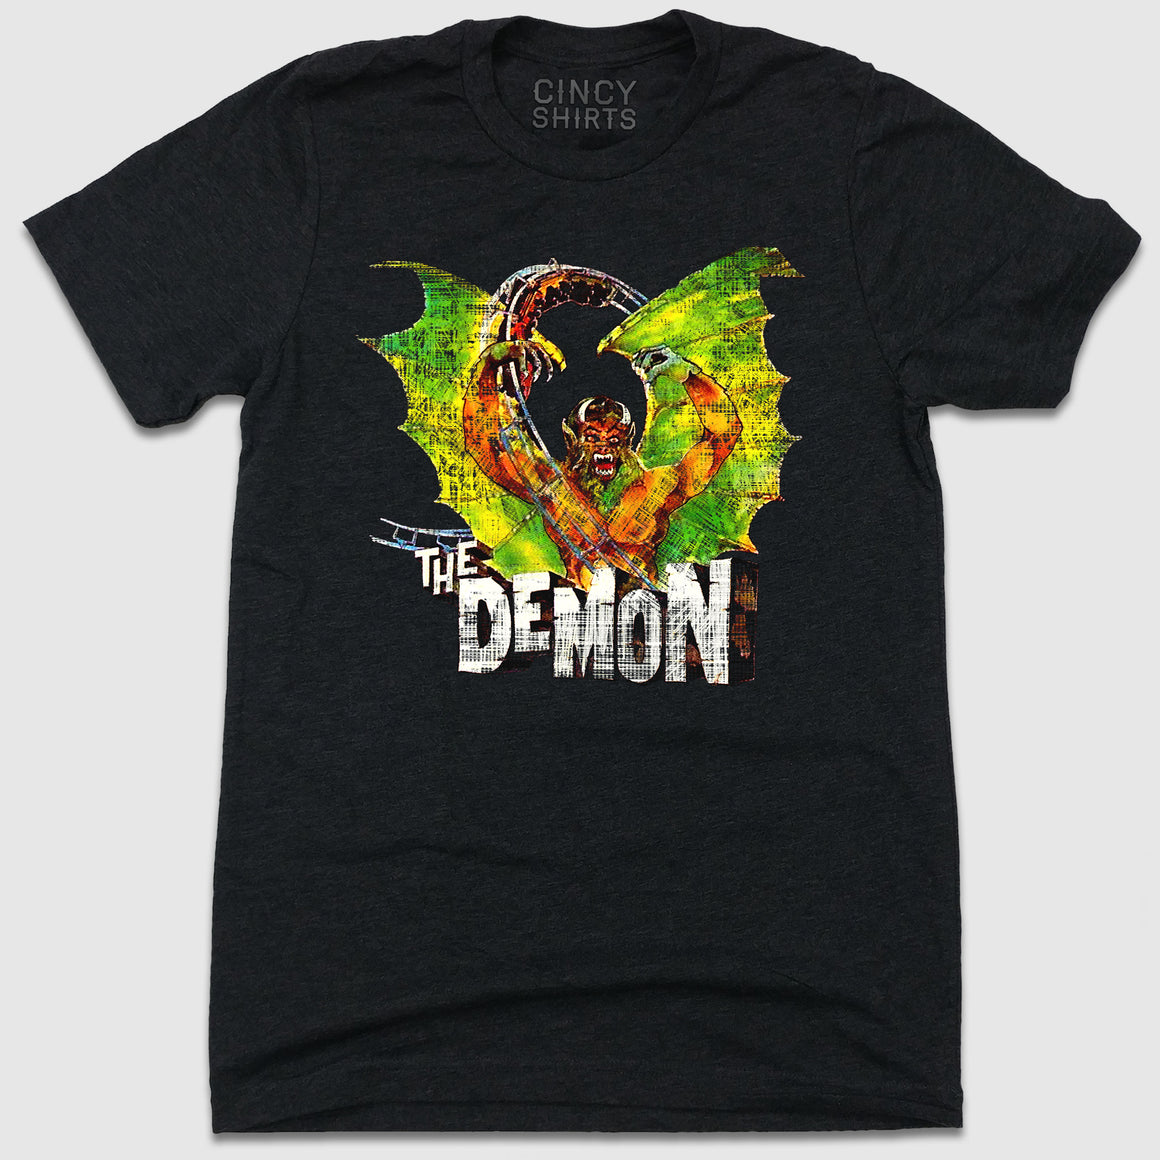 The Screamin Demon - Cincy Shirts